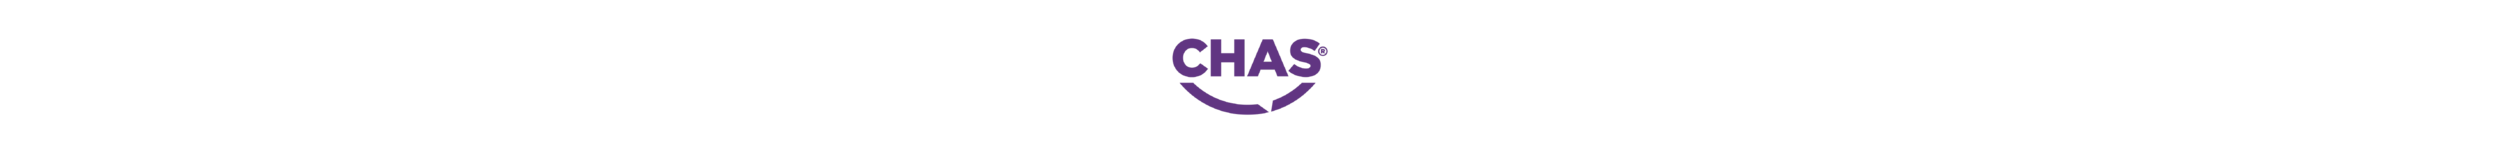 chas-33.png